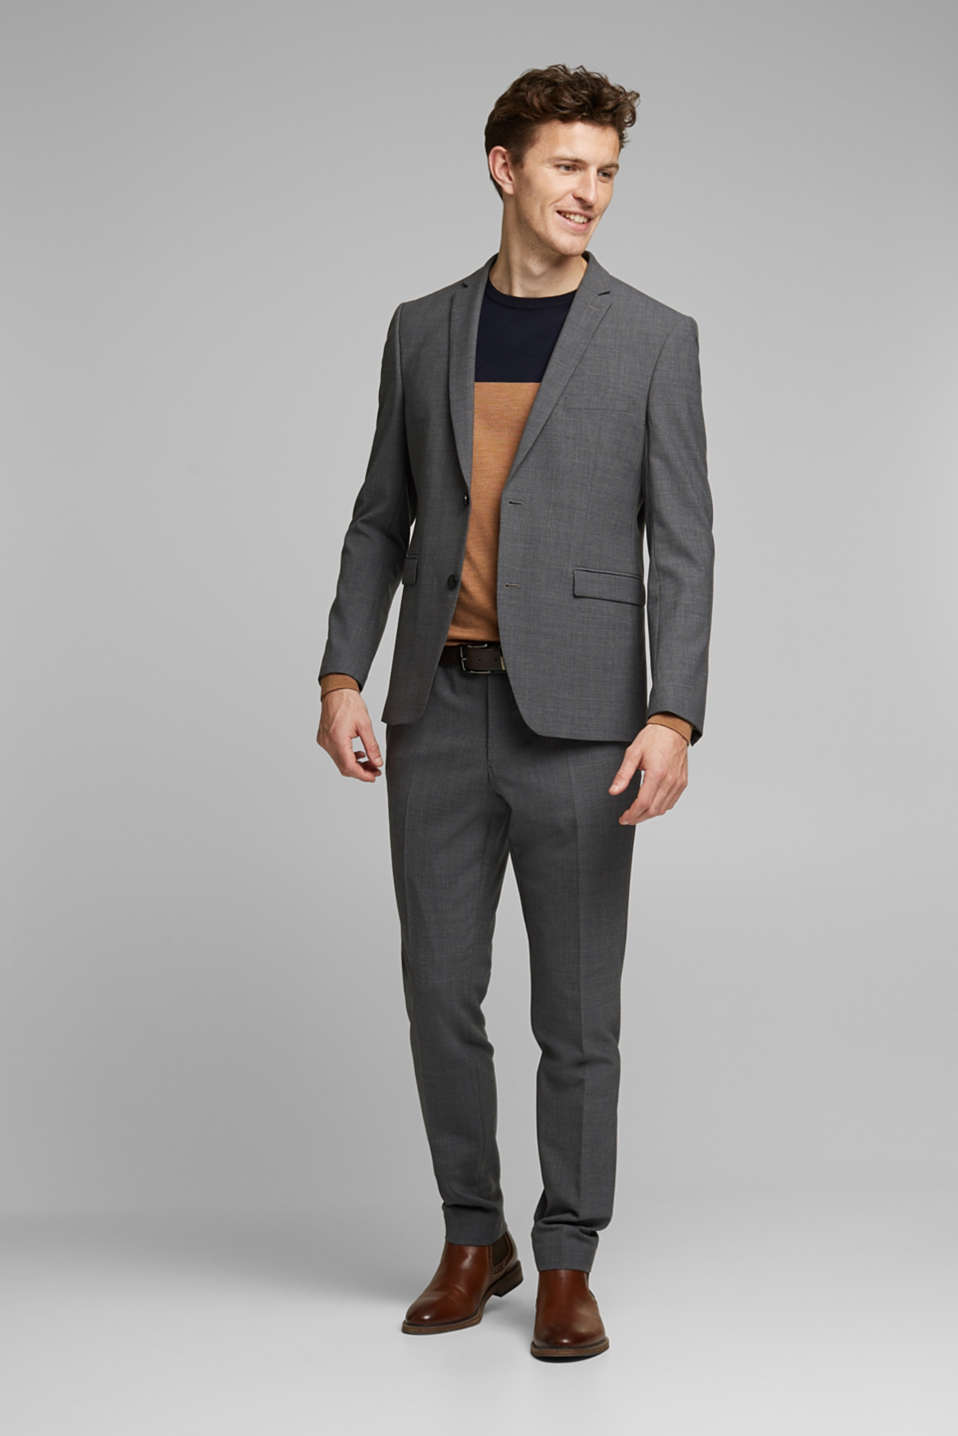 ACTIVE SUIT trousers made of blended wool, DARK GREY 5, detail image number 2